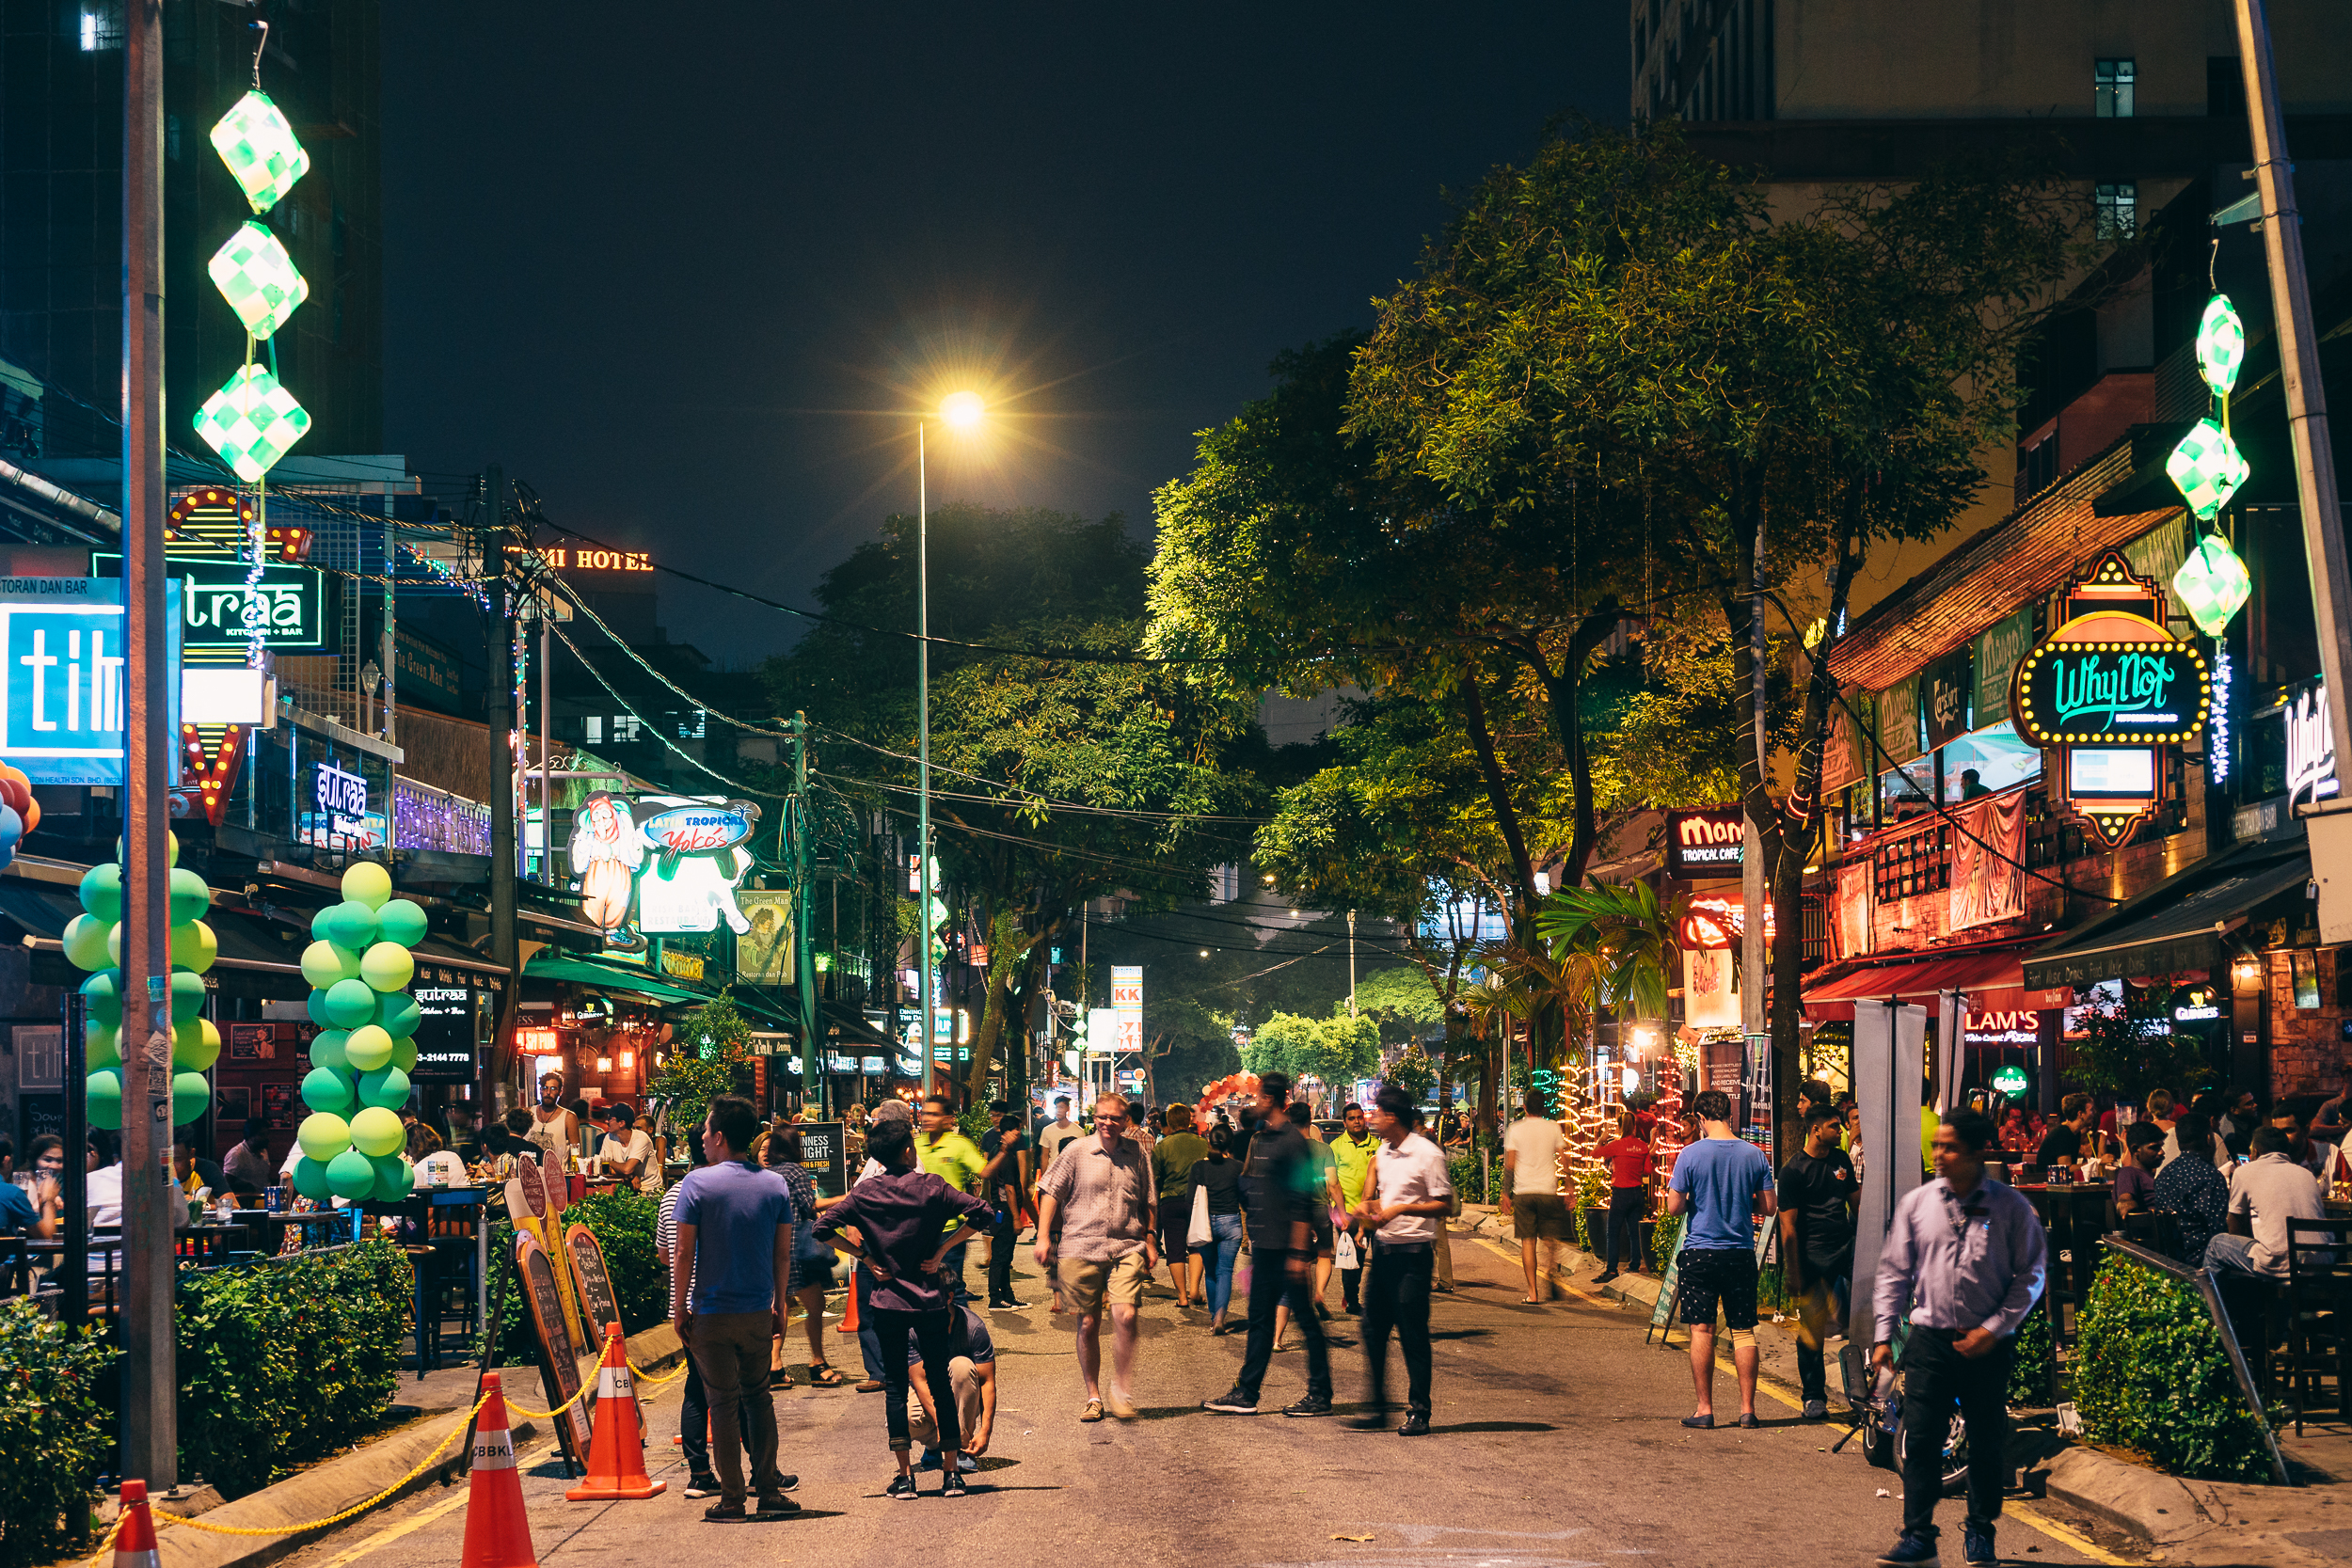 Changkat Bukit during the end of the Ramadan.The road was closed off for people to walk through freely.